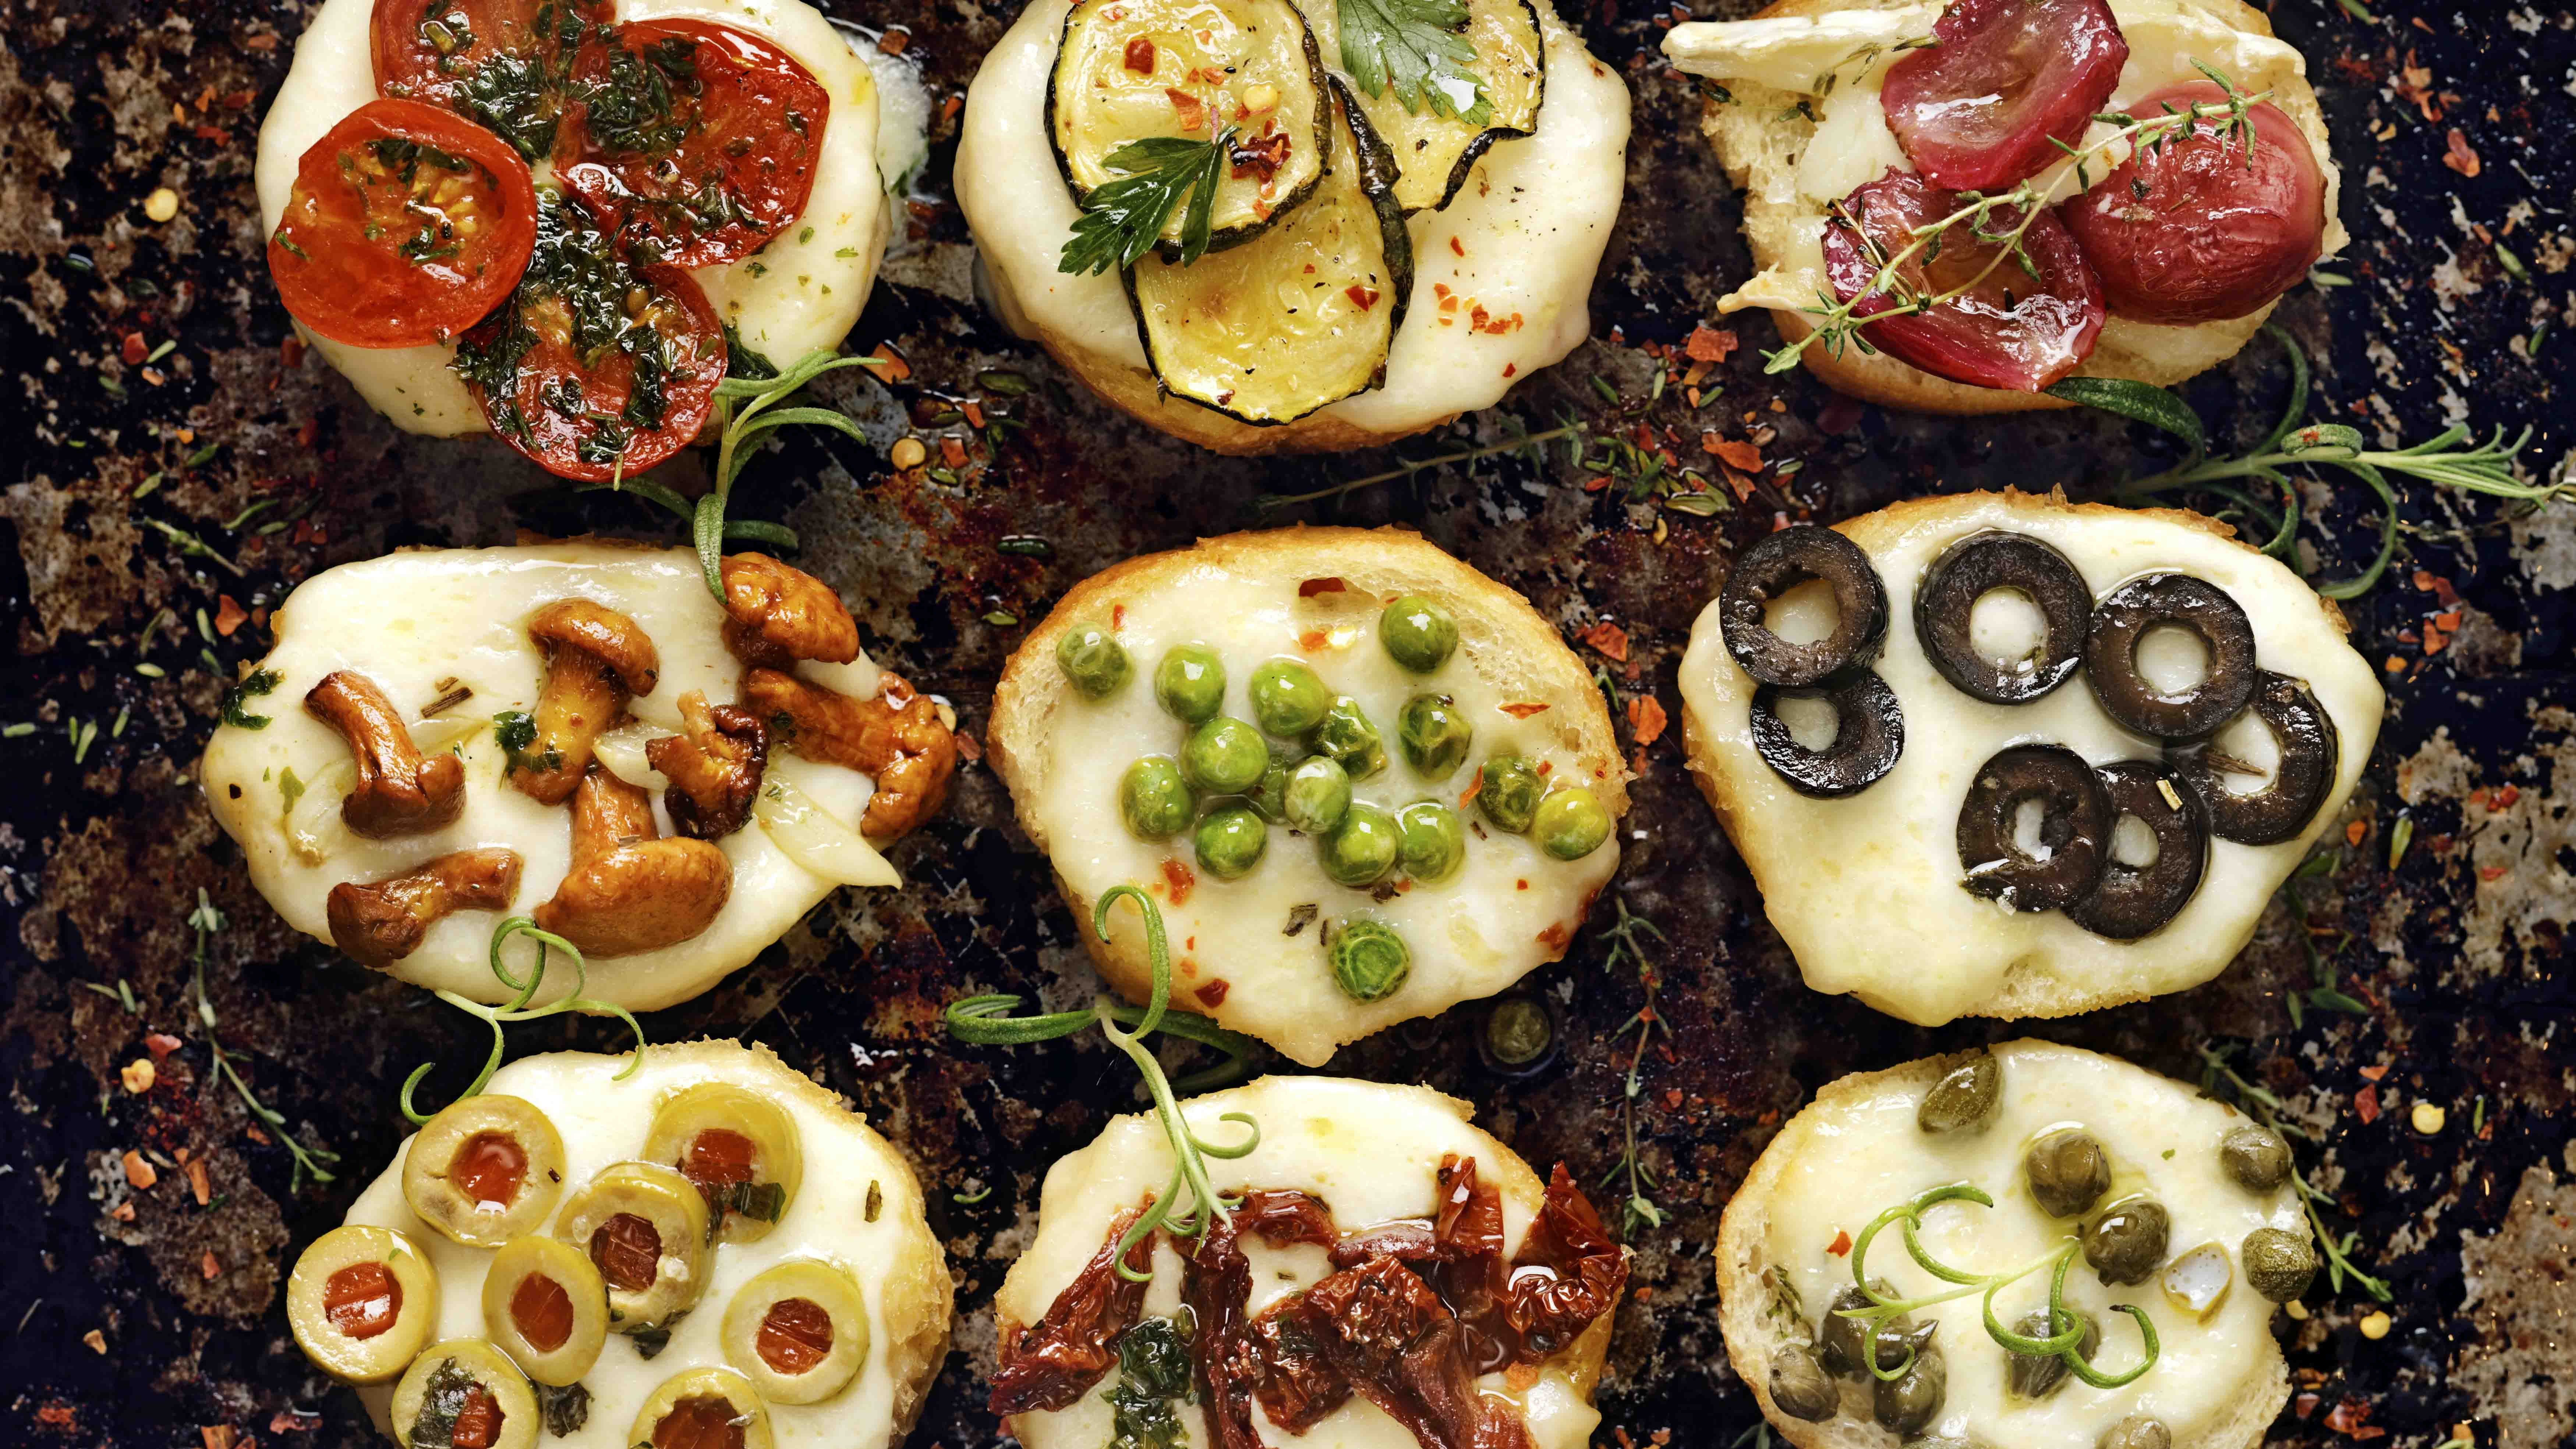 Crostini with different toppings on dark background. Delicious v